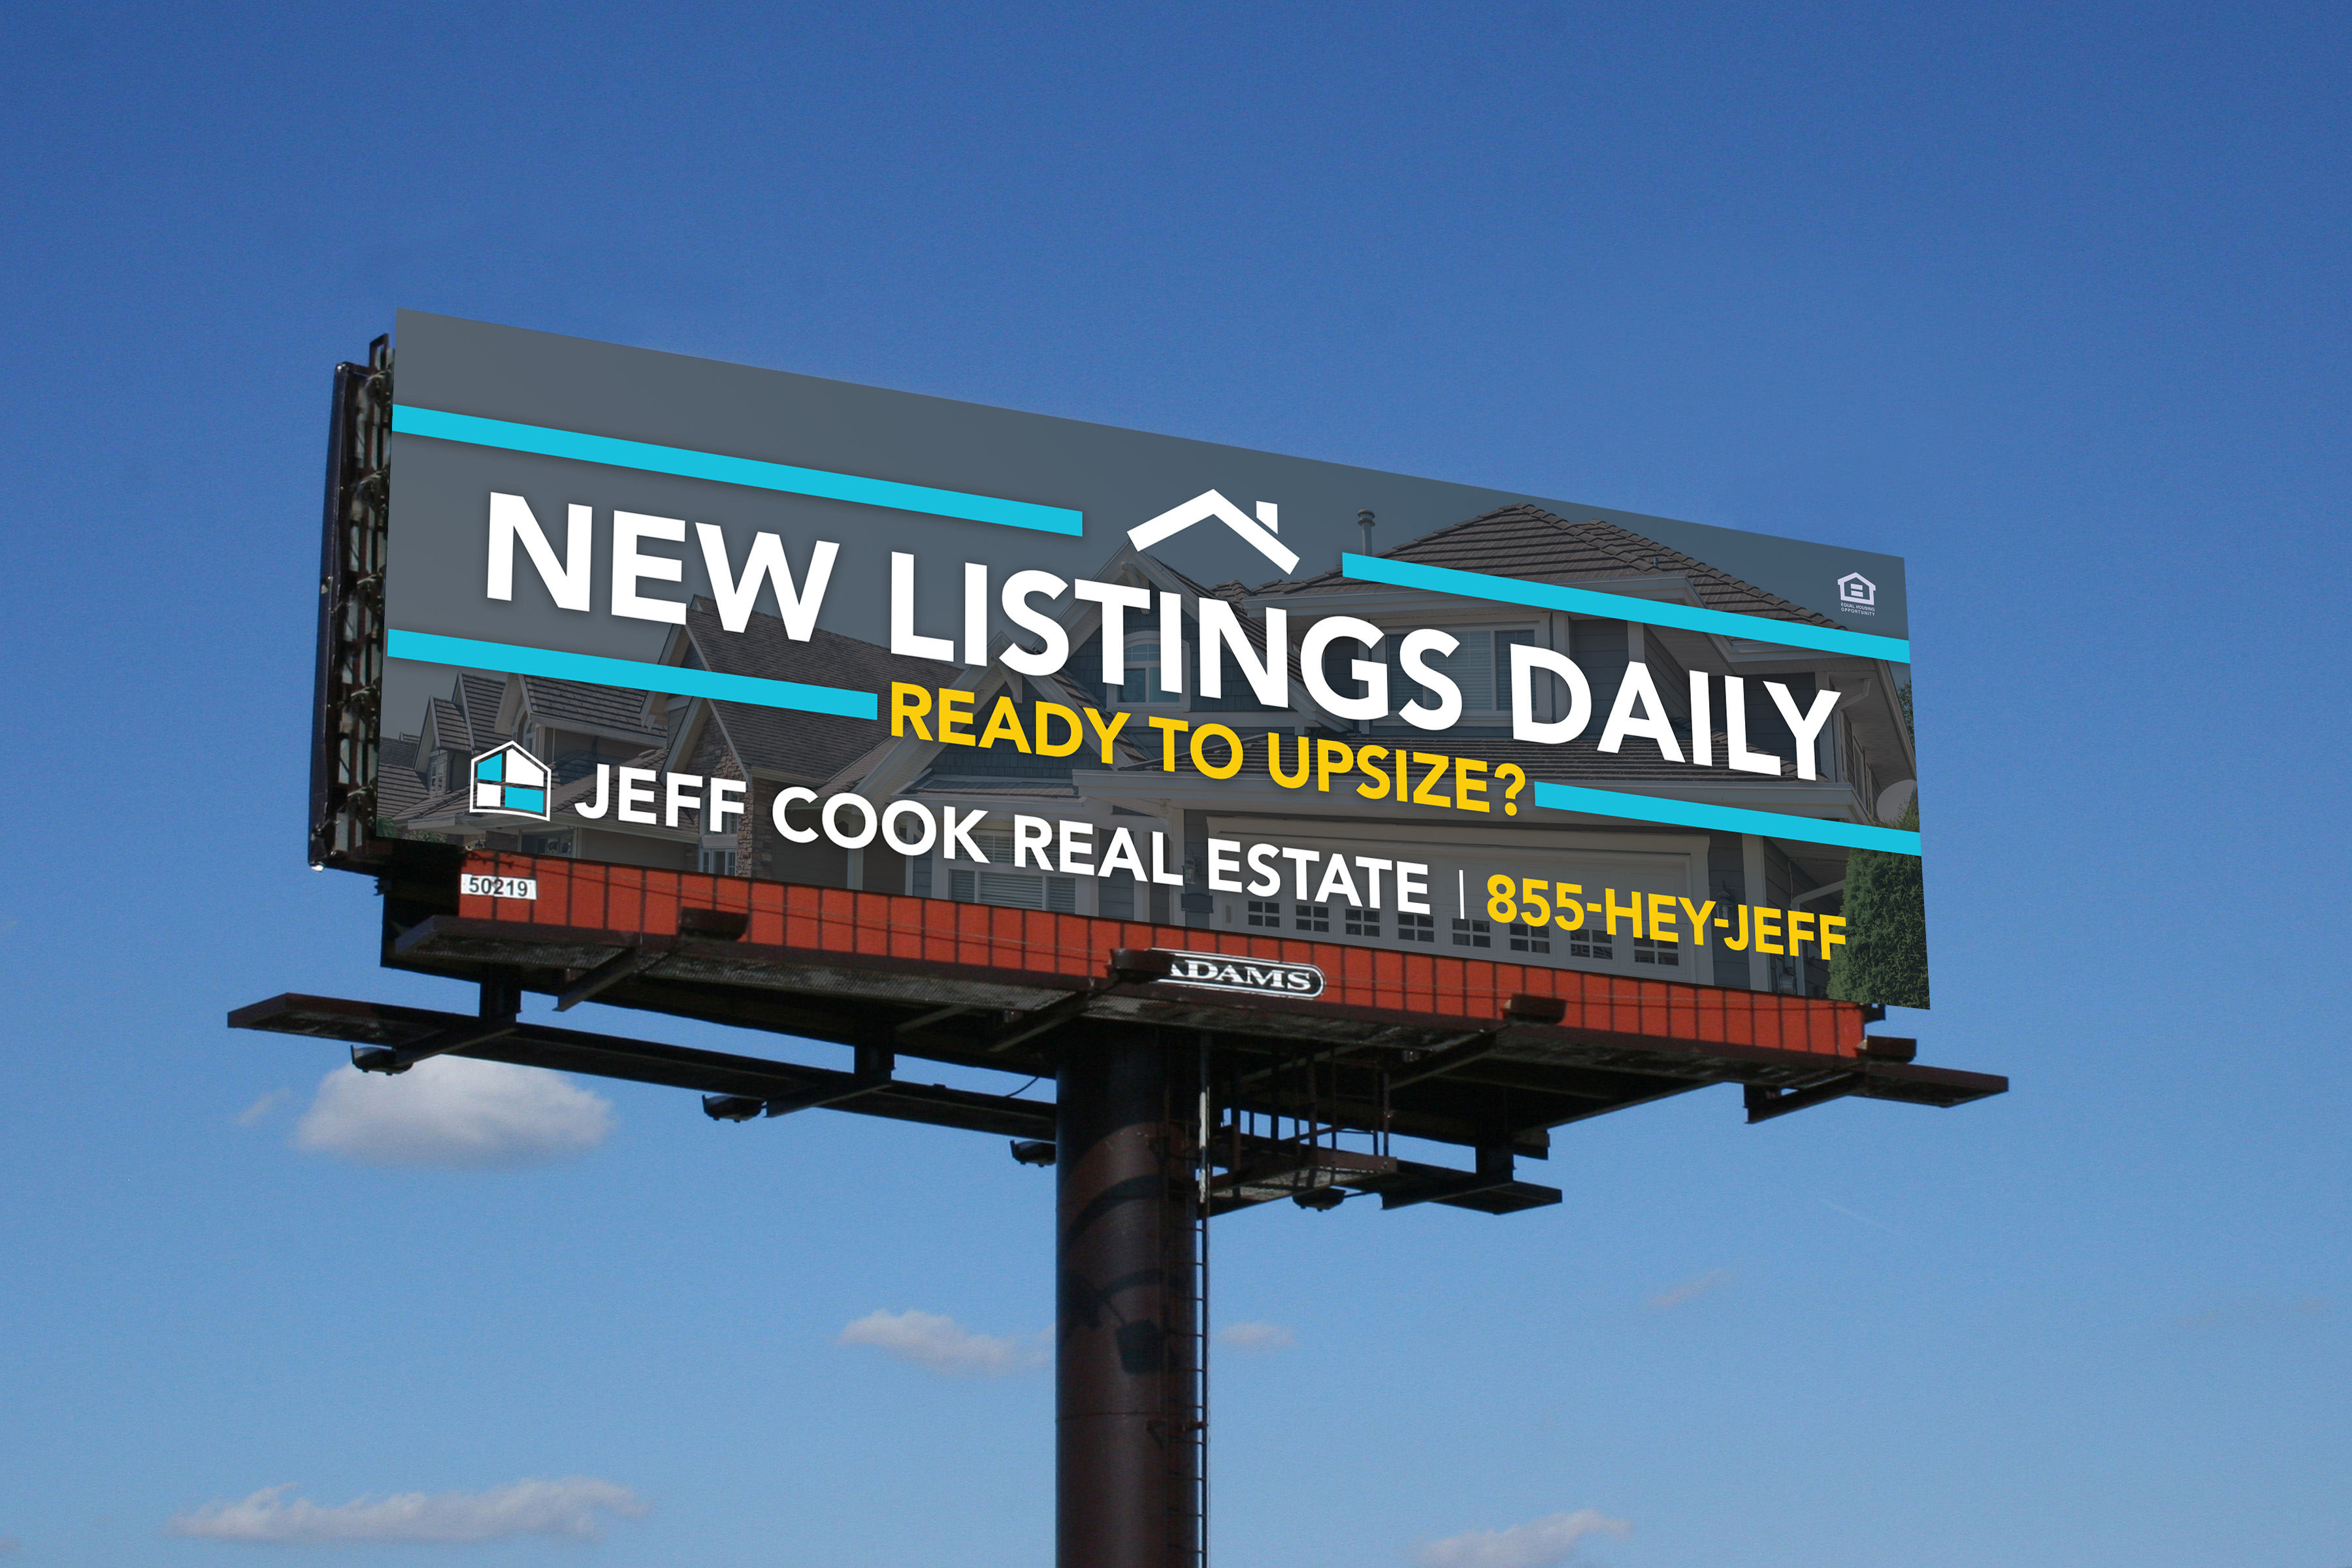 New Listings Daily